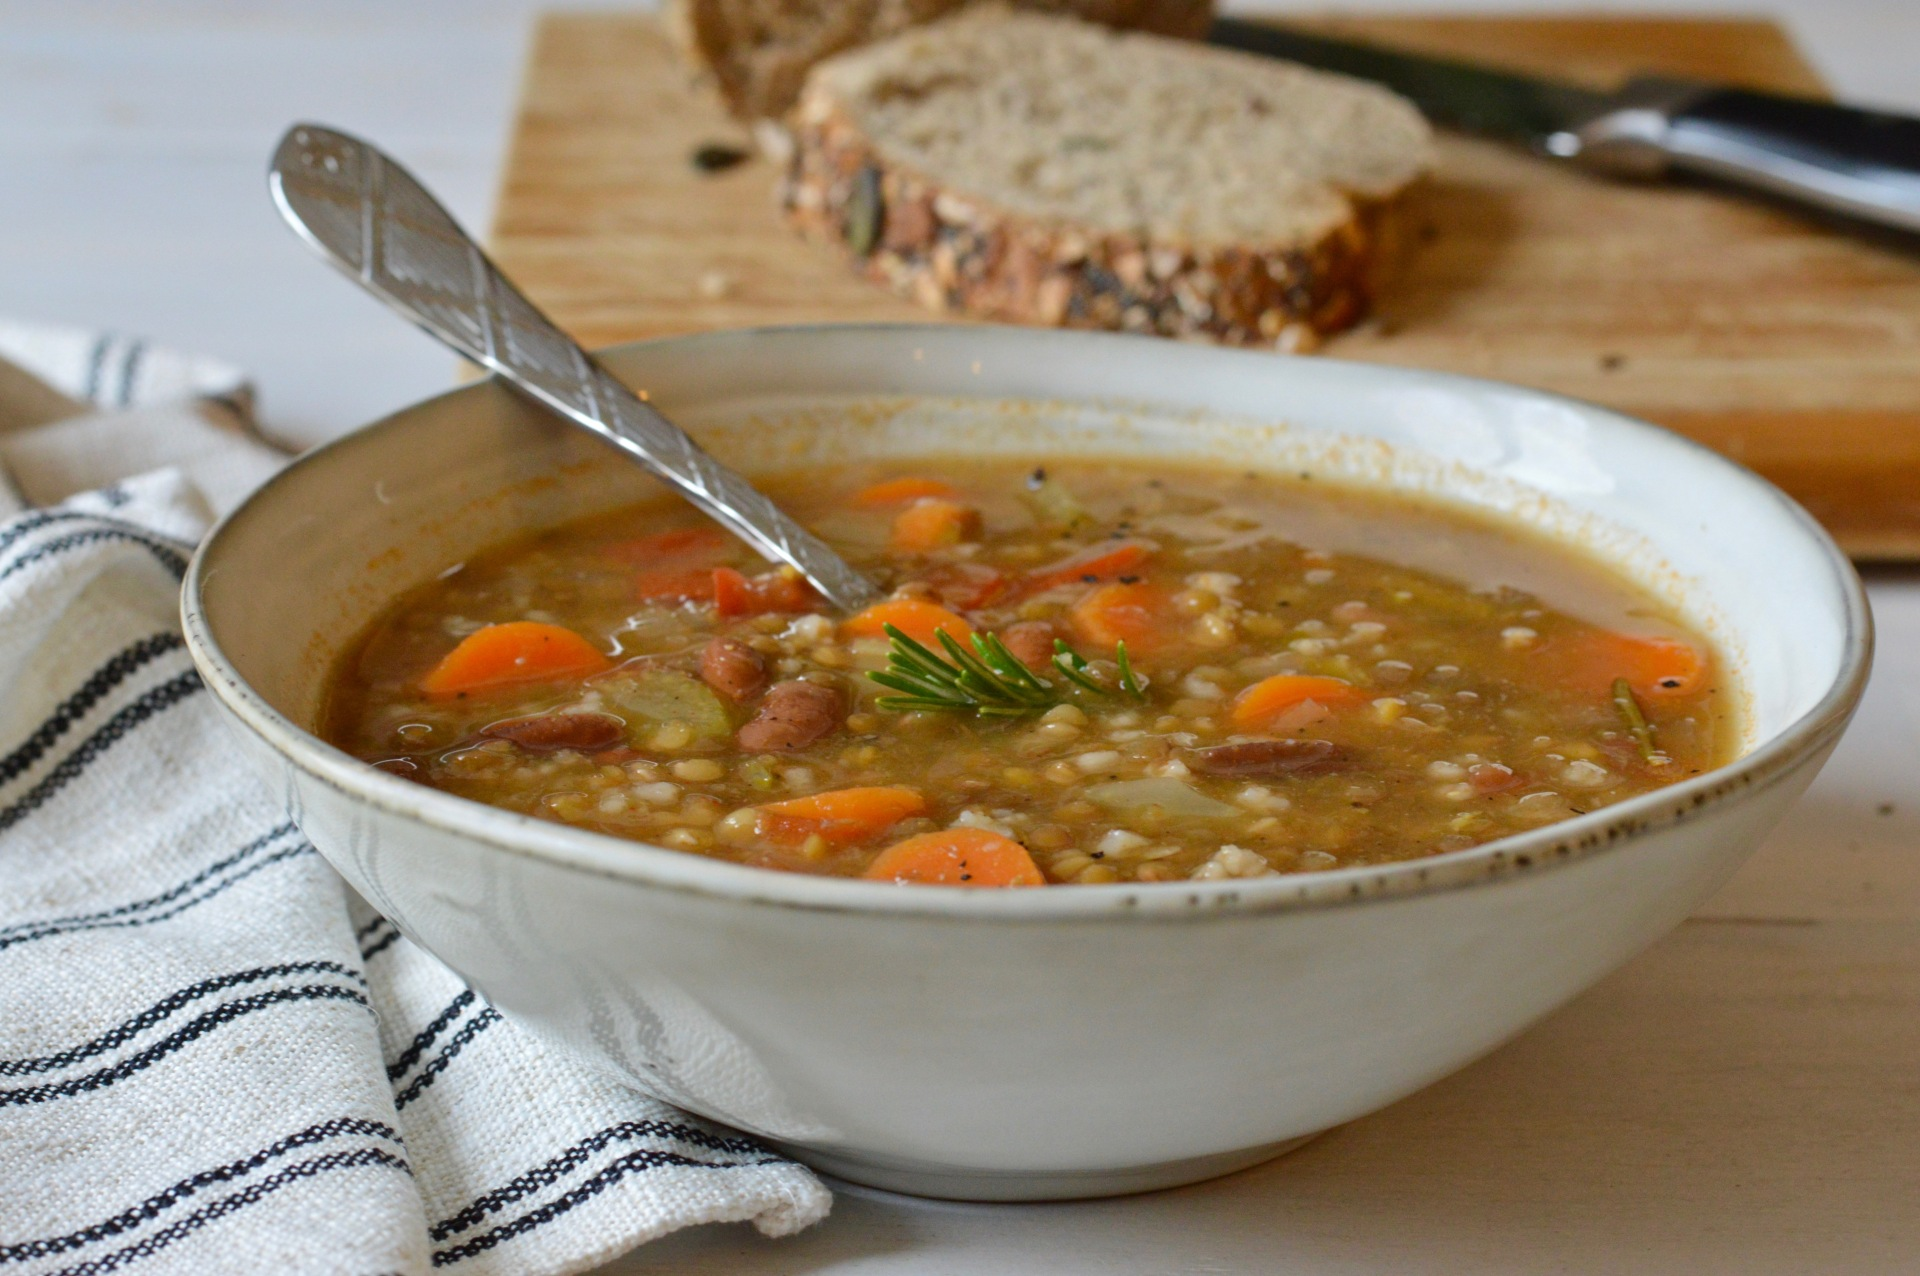 Bean, lentil and rice soup